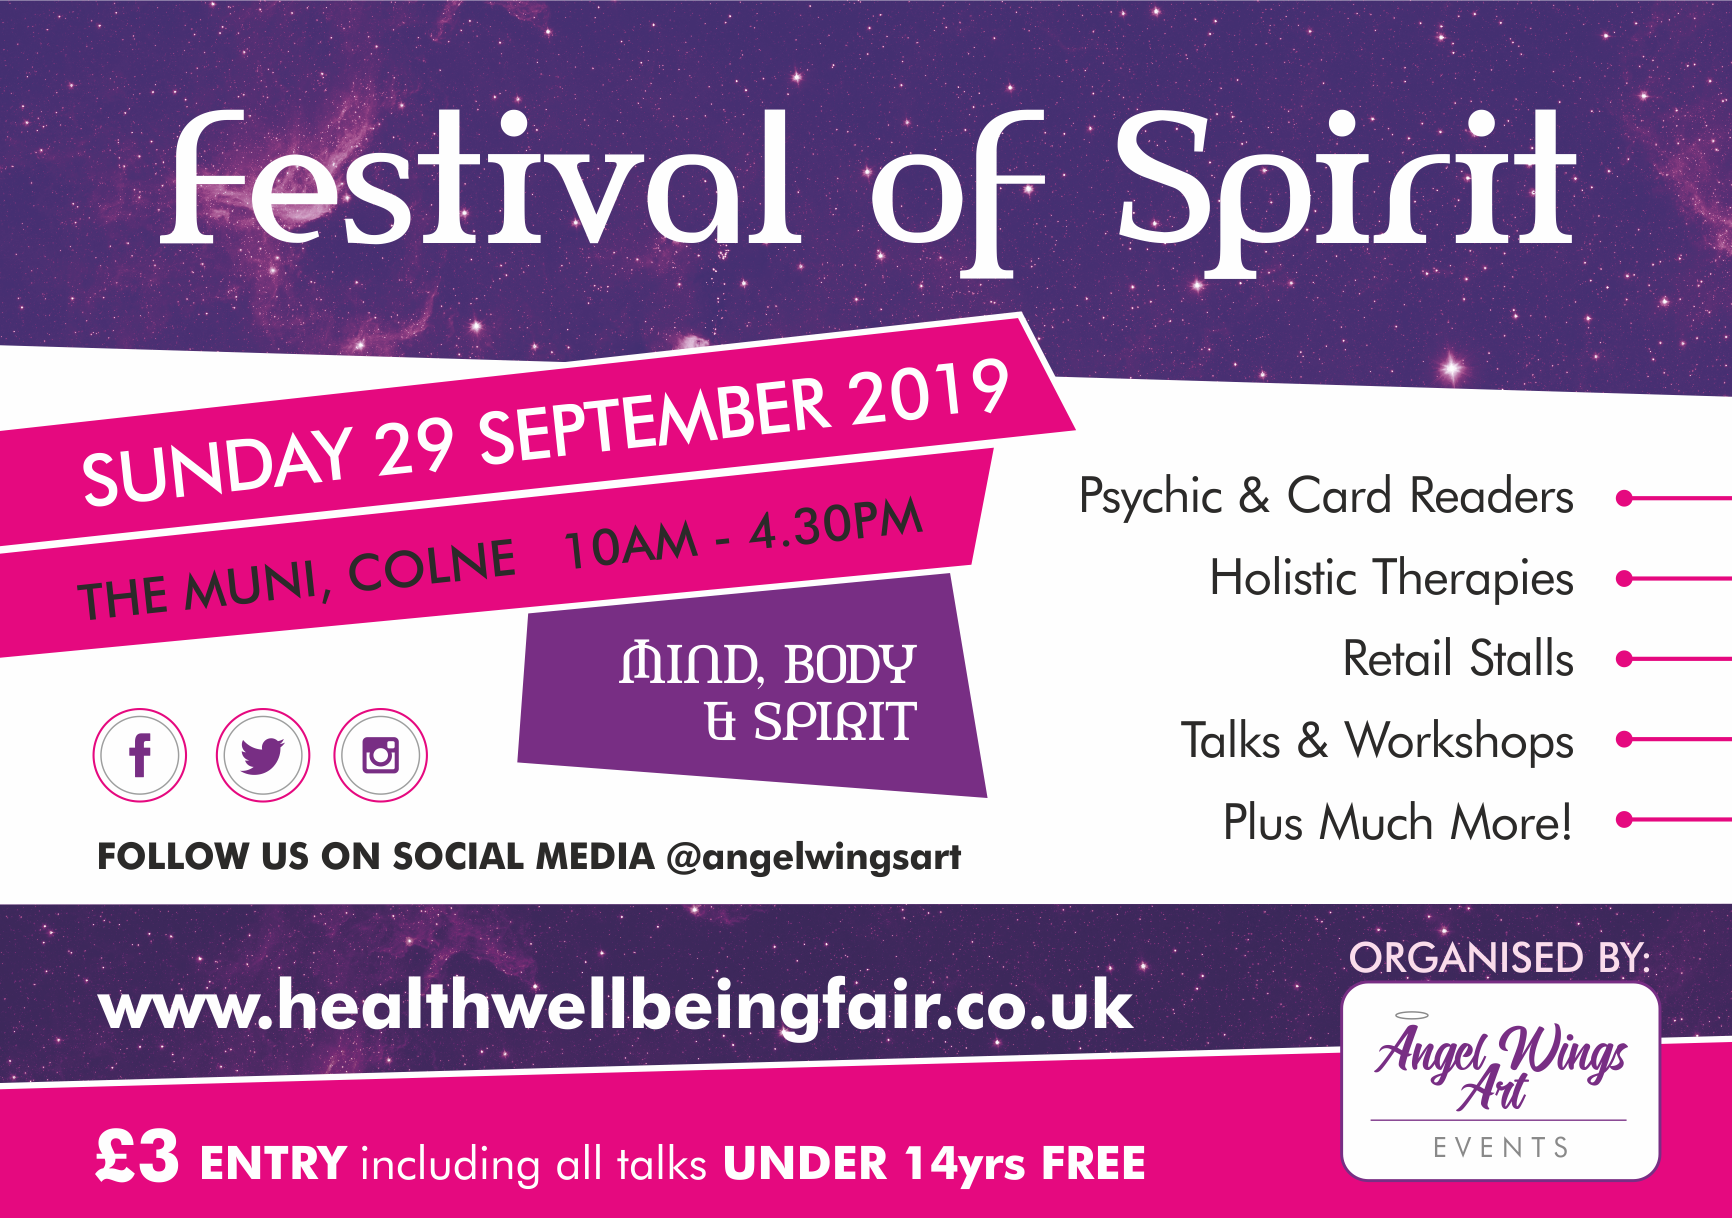 Festival of Spirit Autumn 2019